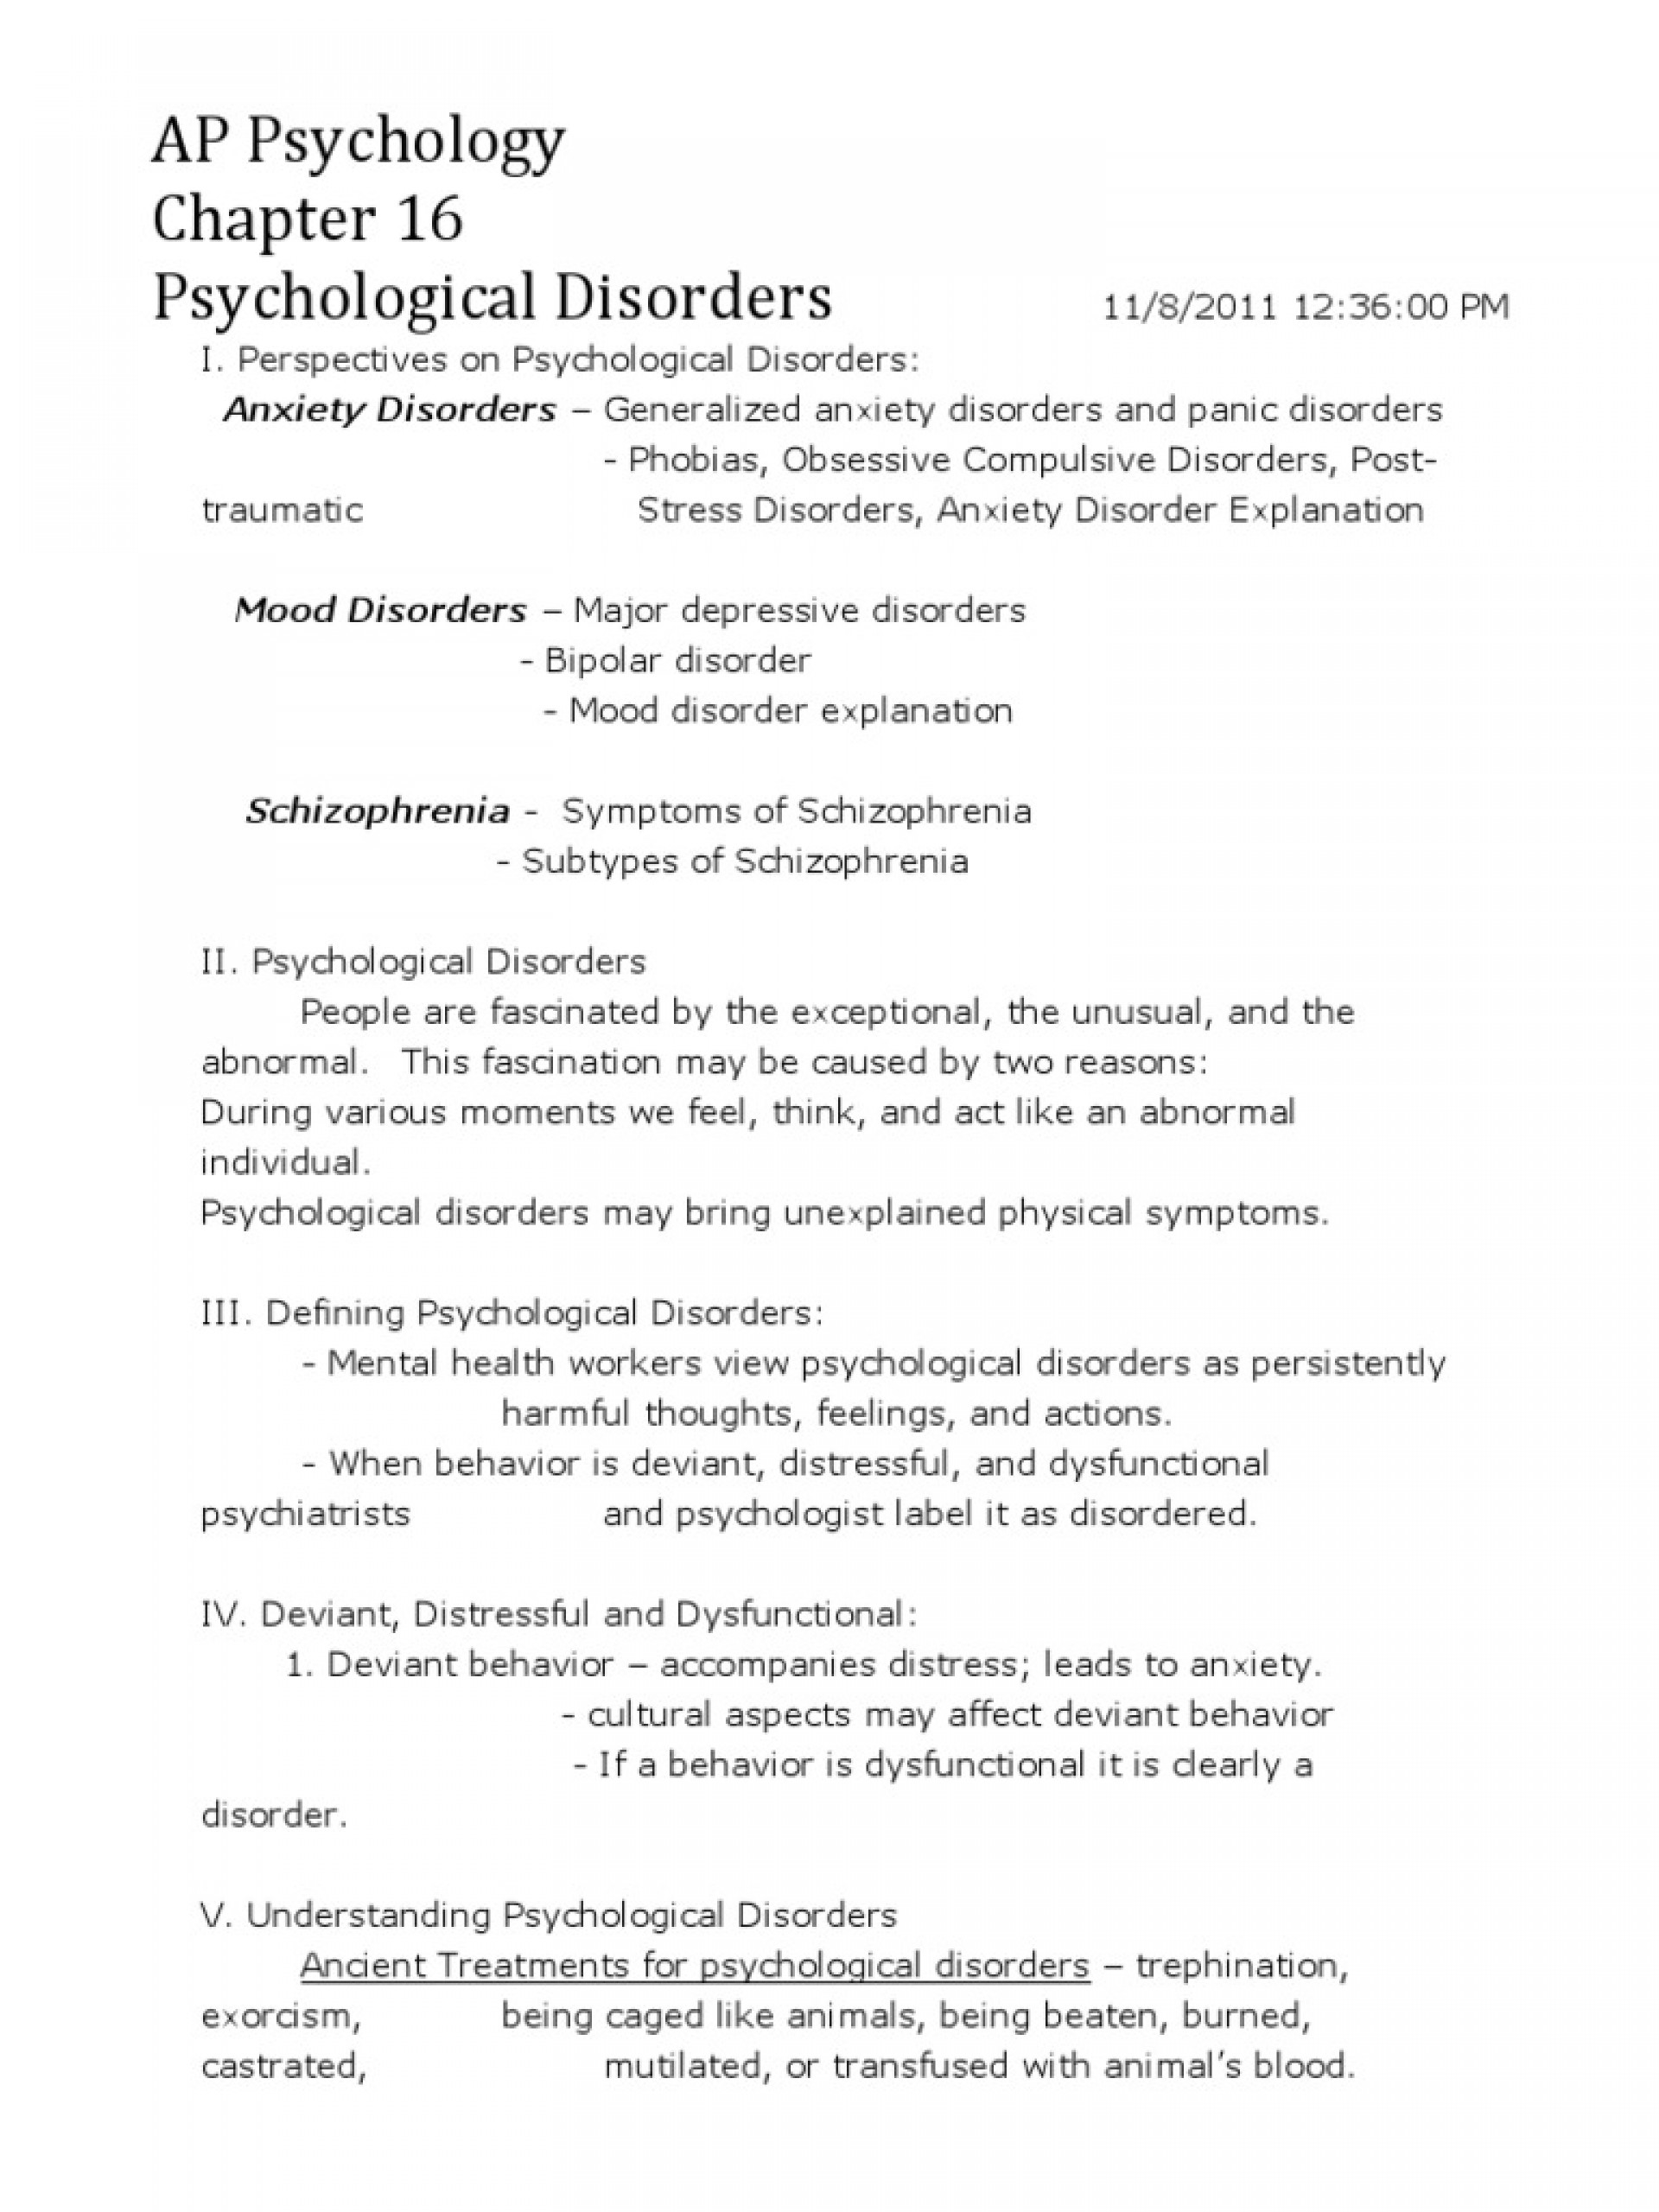 017 Research Paper On Eating Disorders Bipolar Disorder Essay Topics Title Pdf College Introduction Question Conclusion Examples Wonderful Articles And The Media 1920